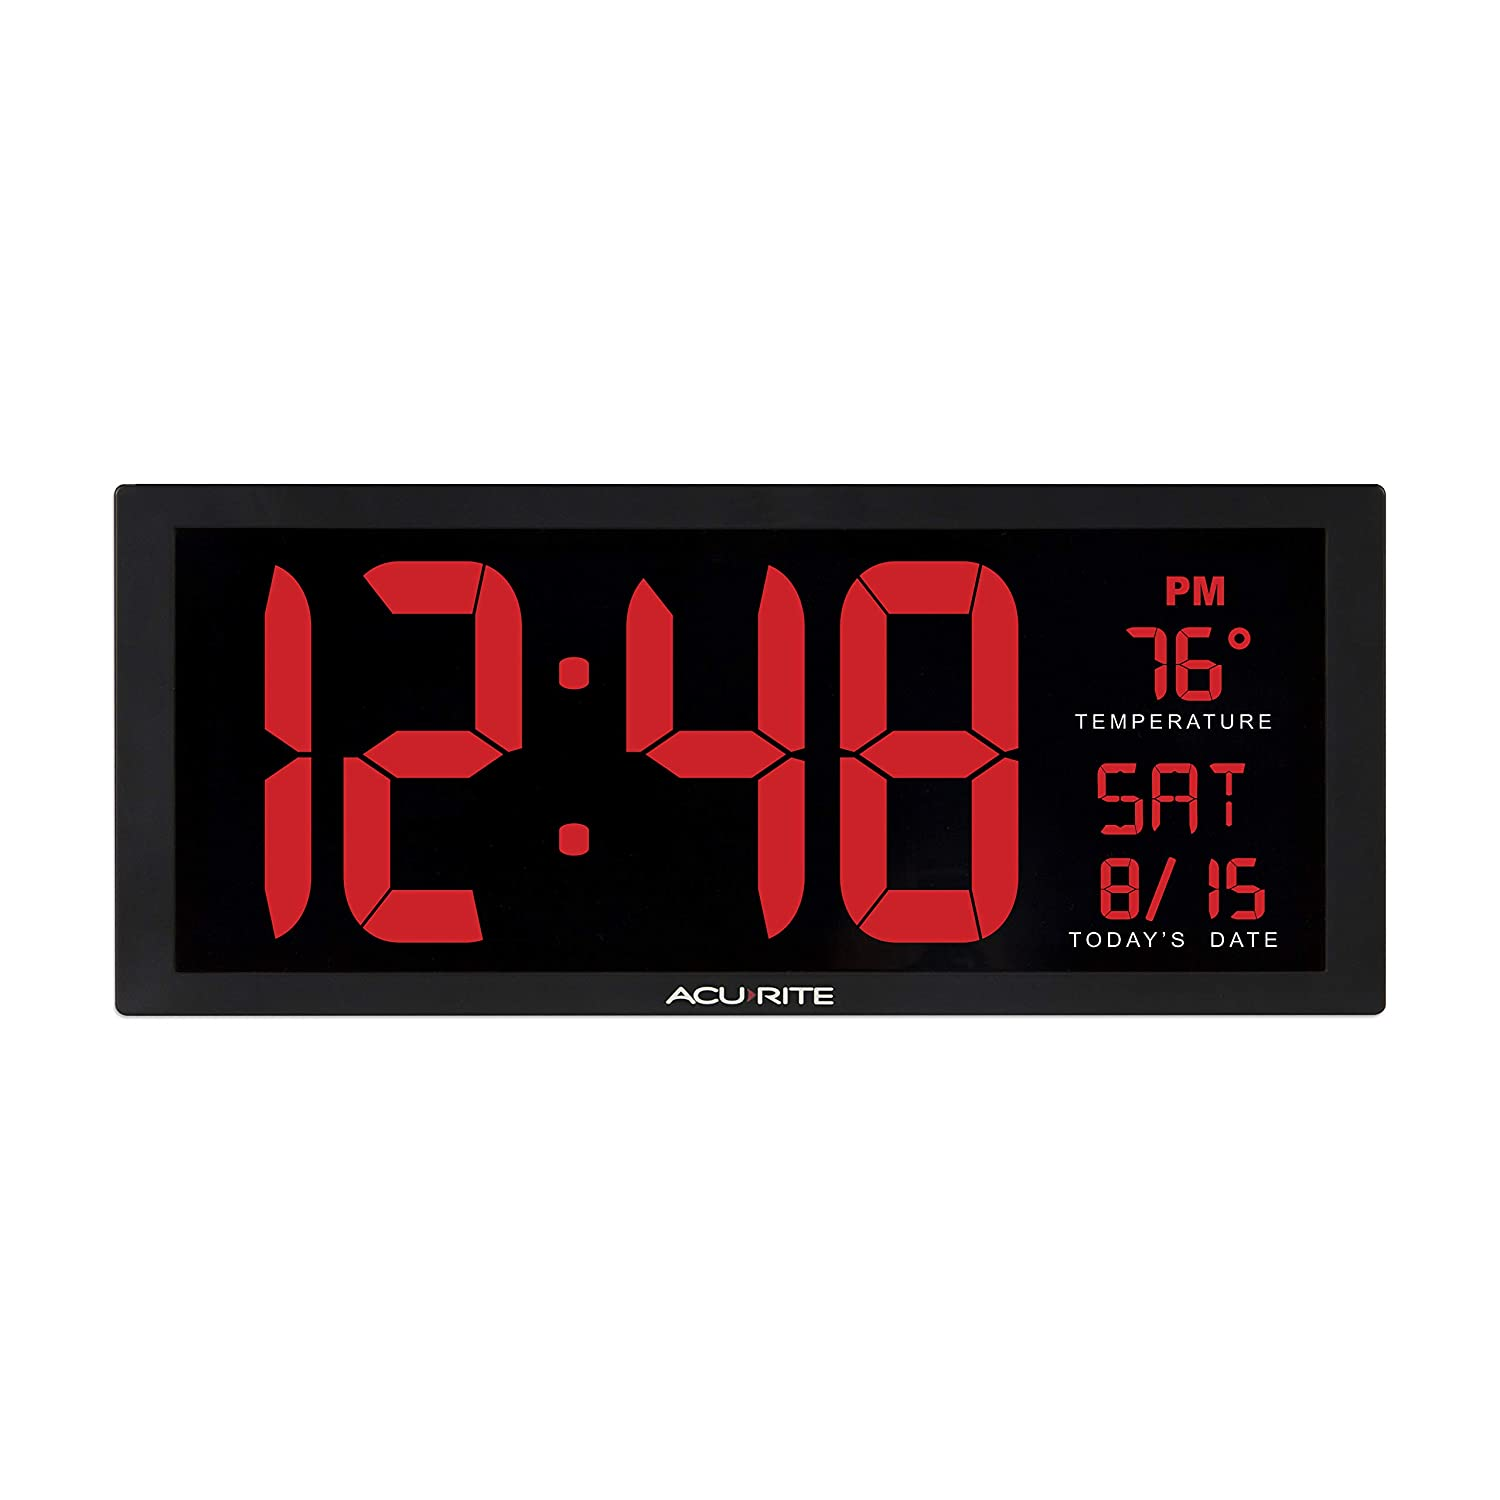 AcuRite 75127 Oversized LED Clock with Indoor Temperature, Date and Fold-Out Stand, 14.5""